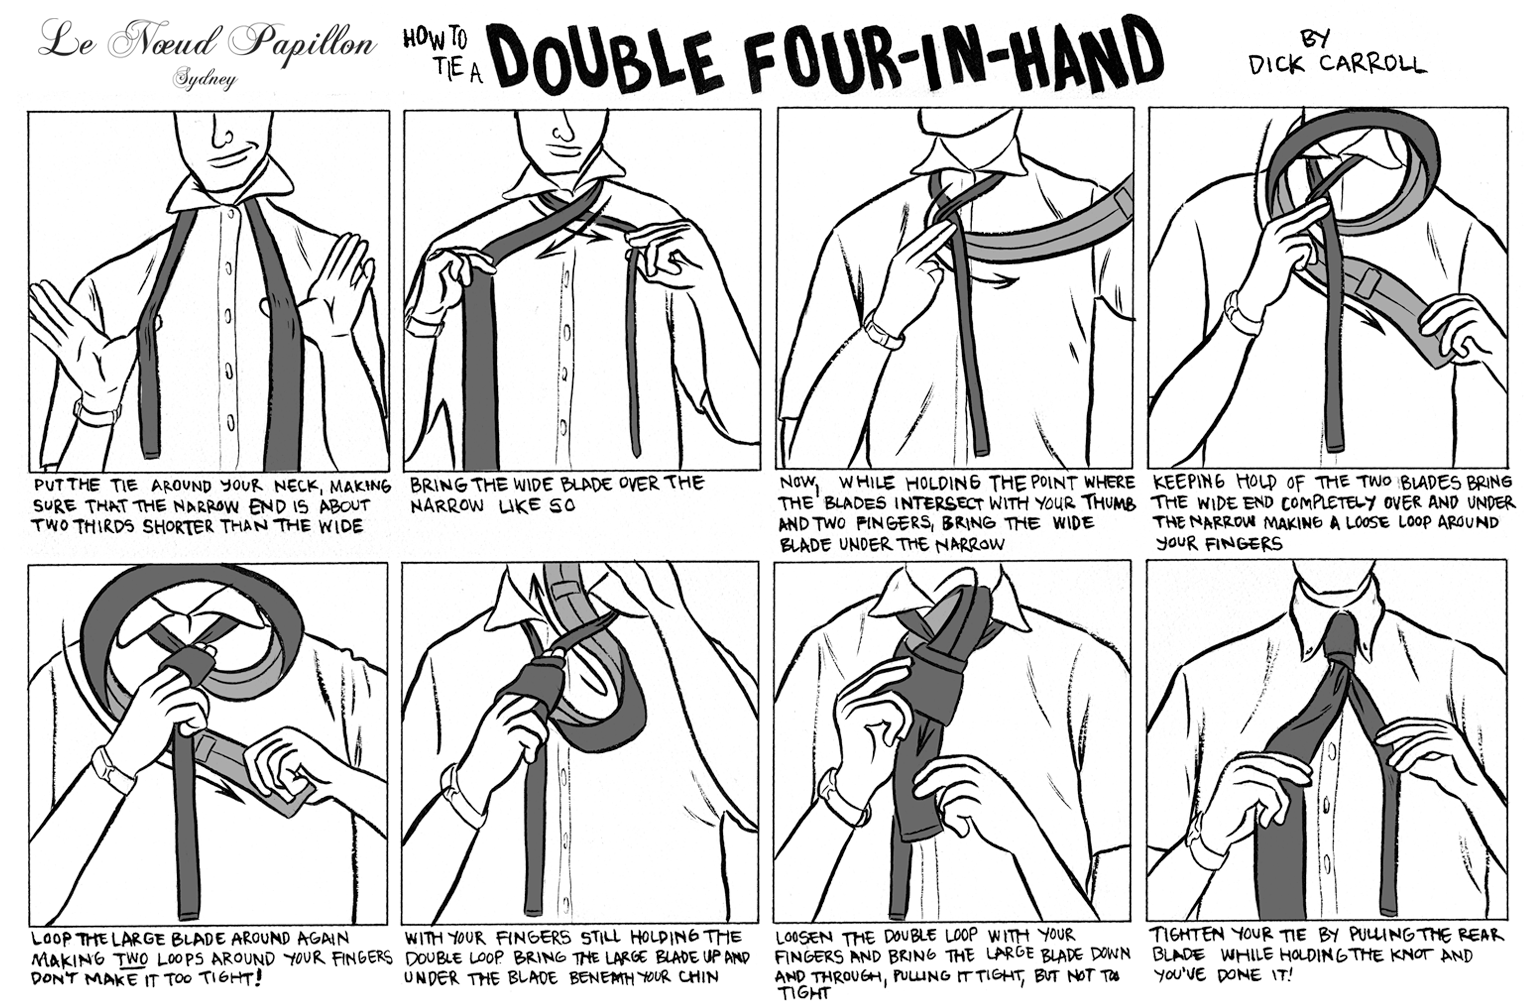 Le noeud papillon of sydney for lovers of bow ties download how with the australian spring now upon us consider both knots as a way to alerting other men in your vicinity that you are in the know wink wink ccuart Images